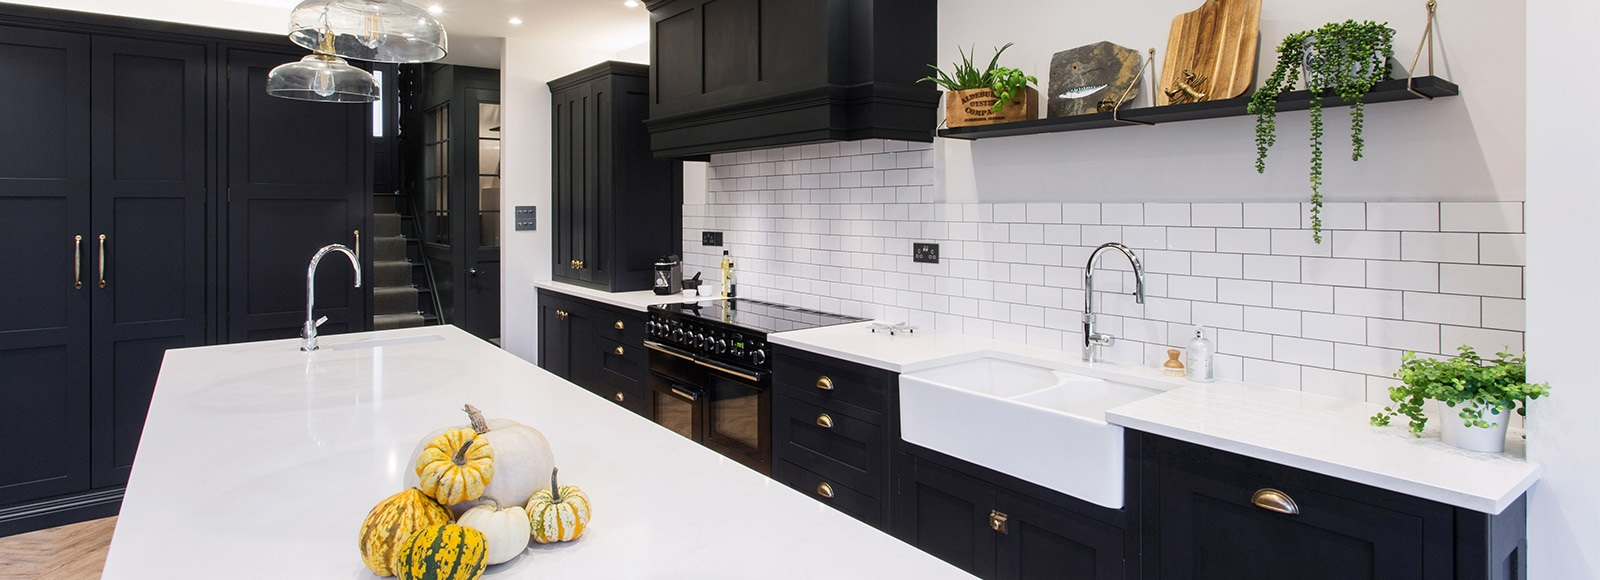 Industrial Nautical Shaker Kitchen - Burlanes bespoke Hoyden shaker kitchen in navy blue with white worktops, metro tiles splashback and beautiful central kitchen island.